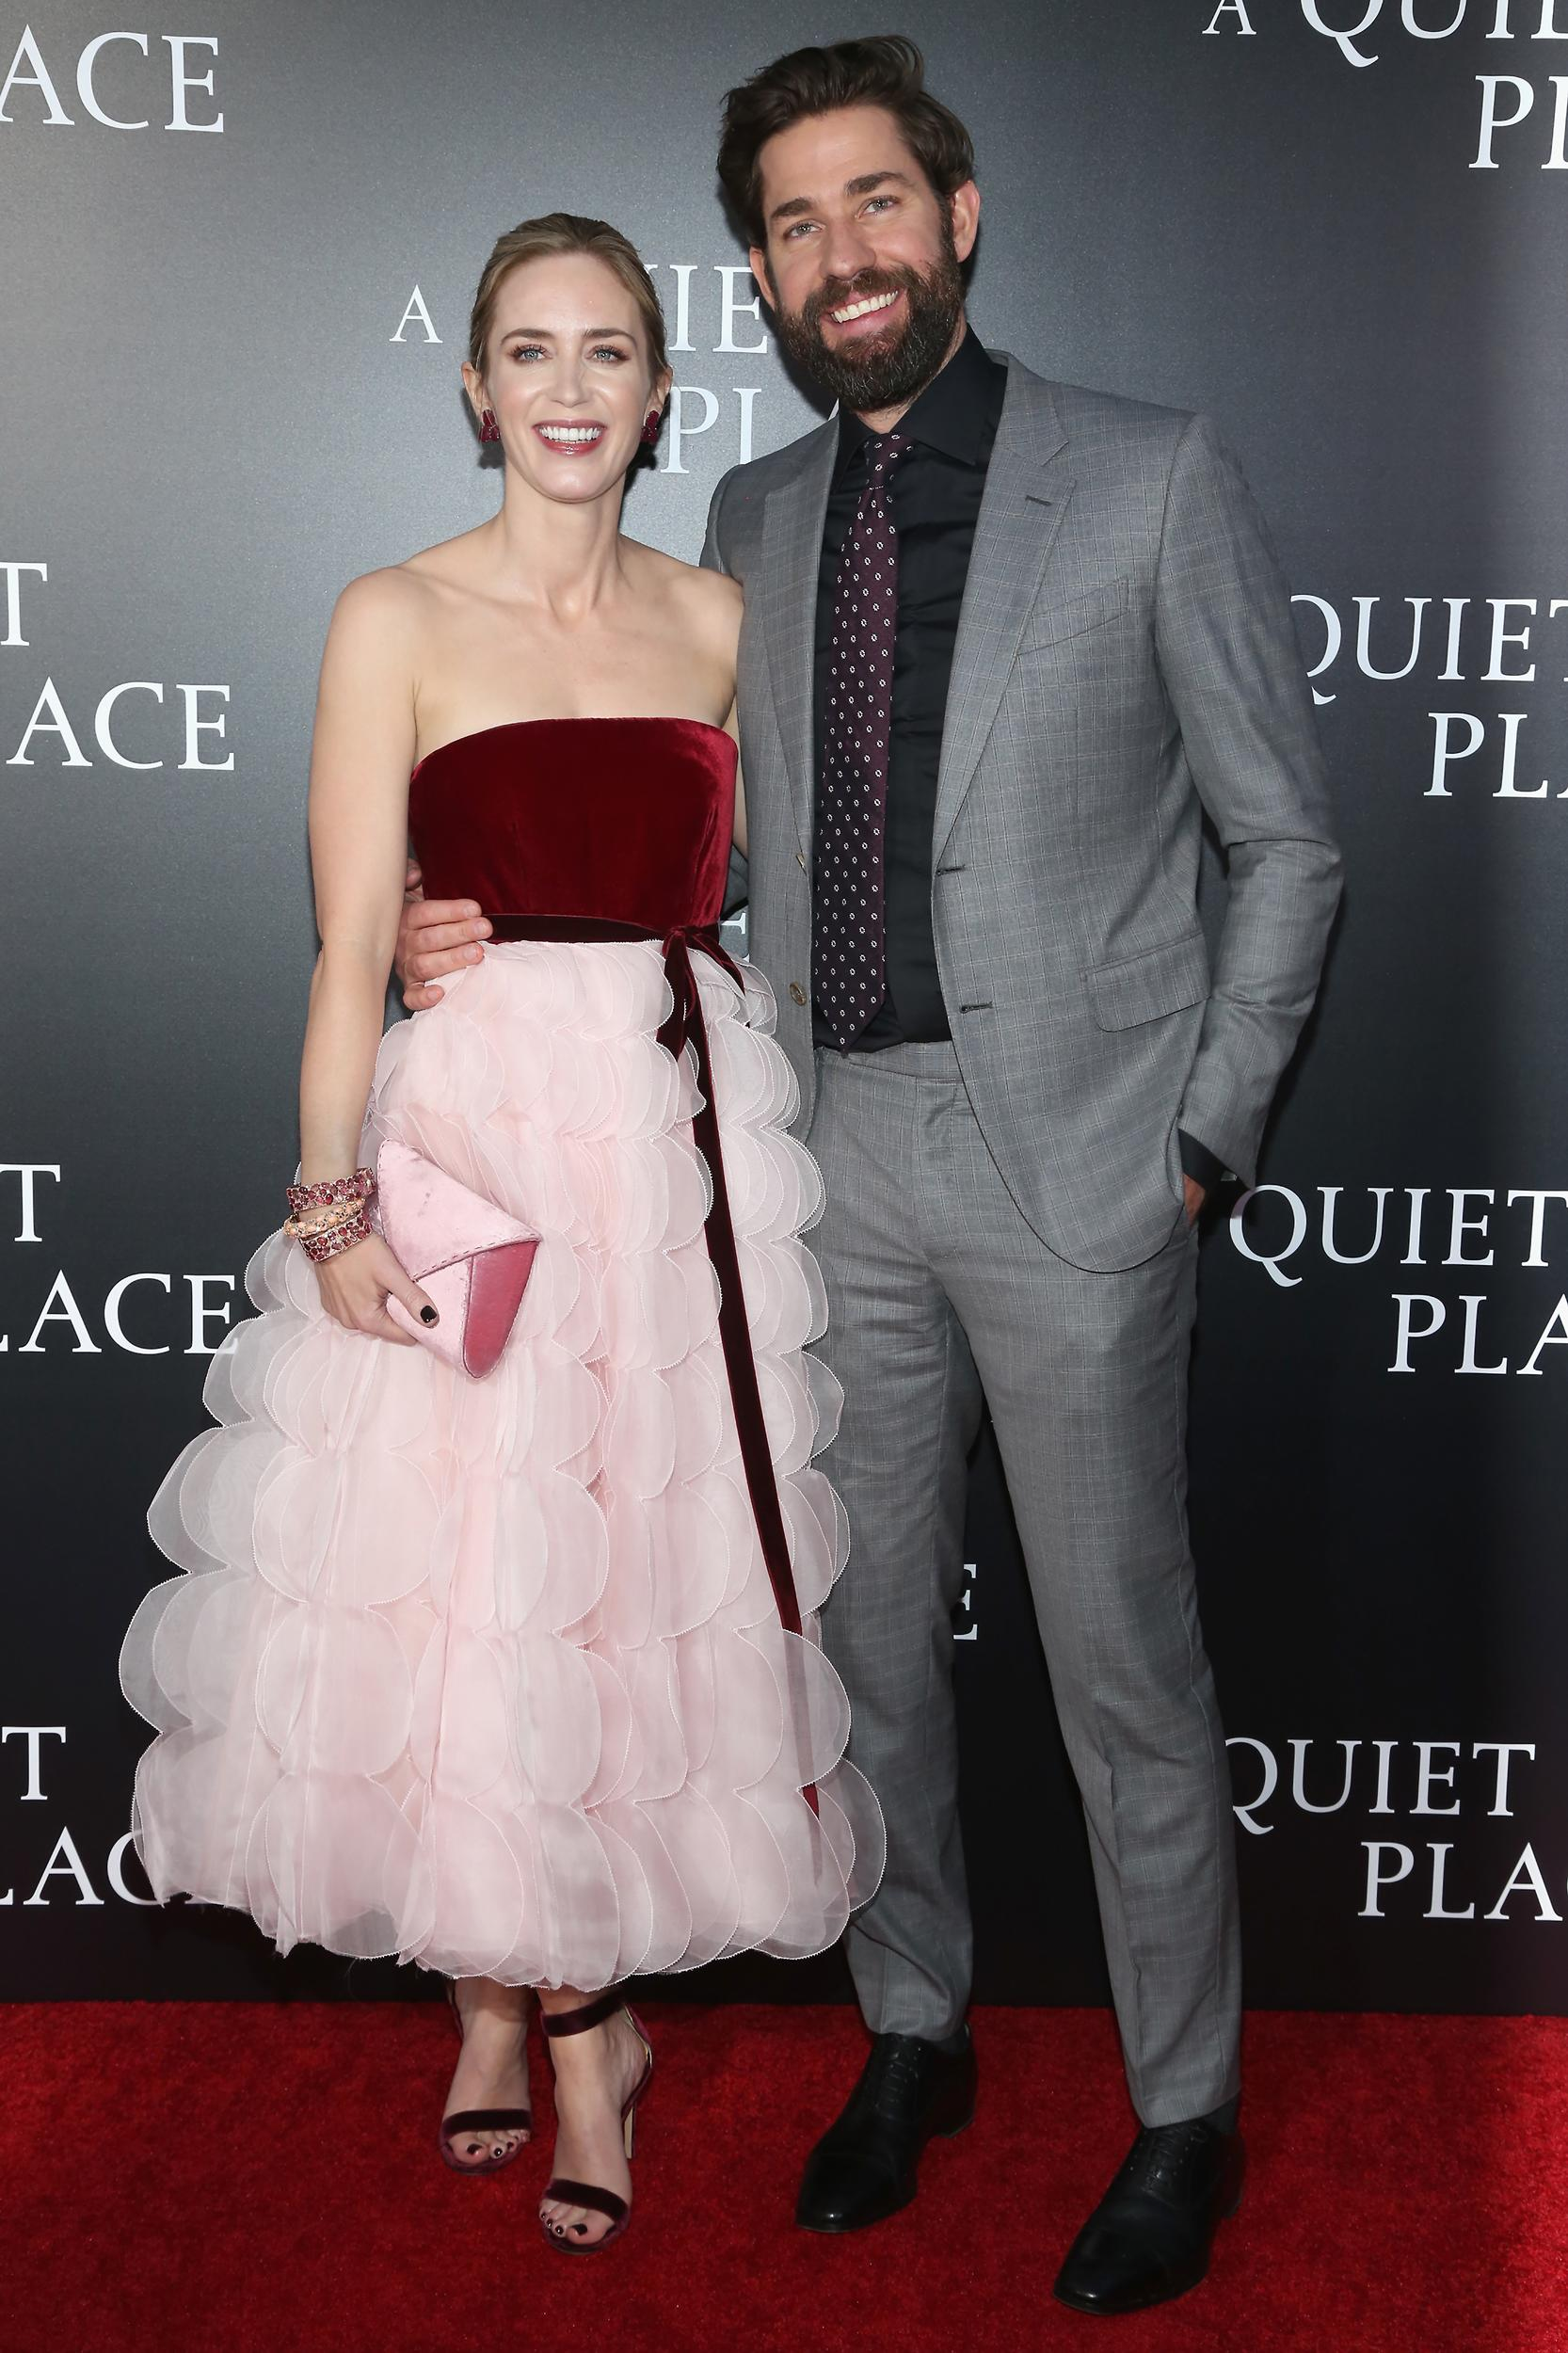 NEW YORK, NY - APRIL 02:  Emily Blunt and John Krasinski attend New York Premiere of 'A Quiet Place' on April 2, 2018 in New York City.  (Photo by Sylvain Gaboury/Patrick McMullan via Getty Images)